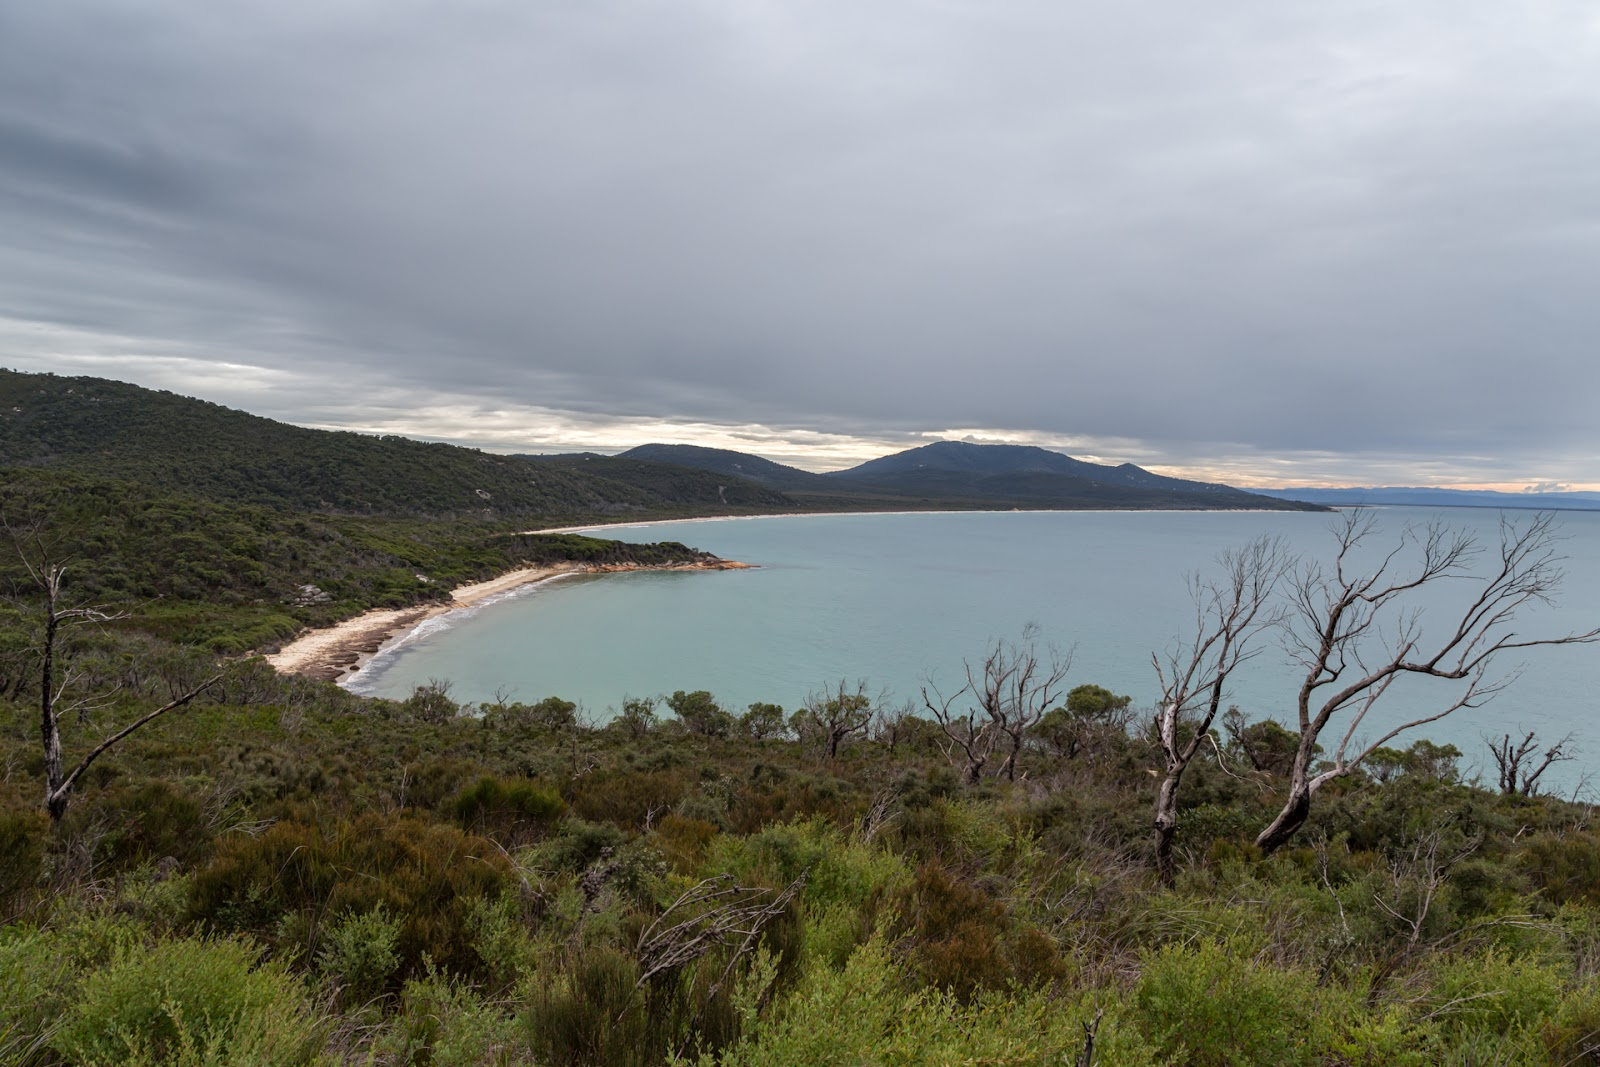 three mile beach from three mile point wilsons promontory